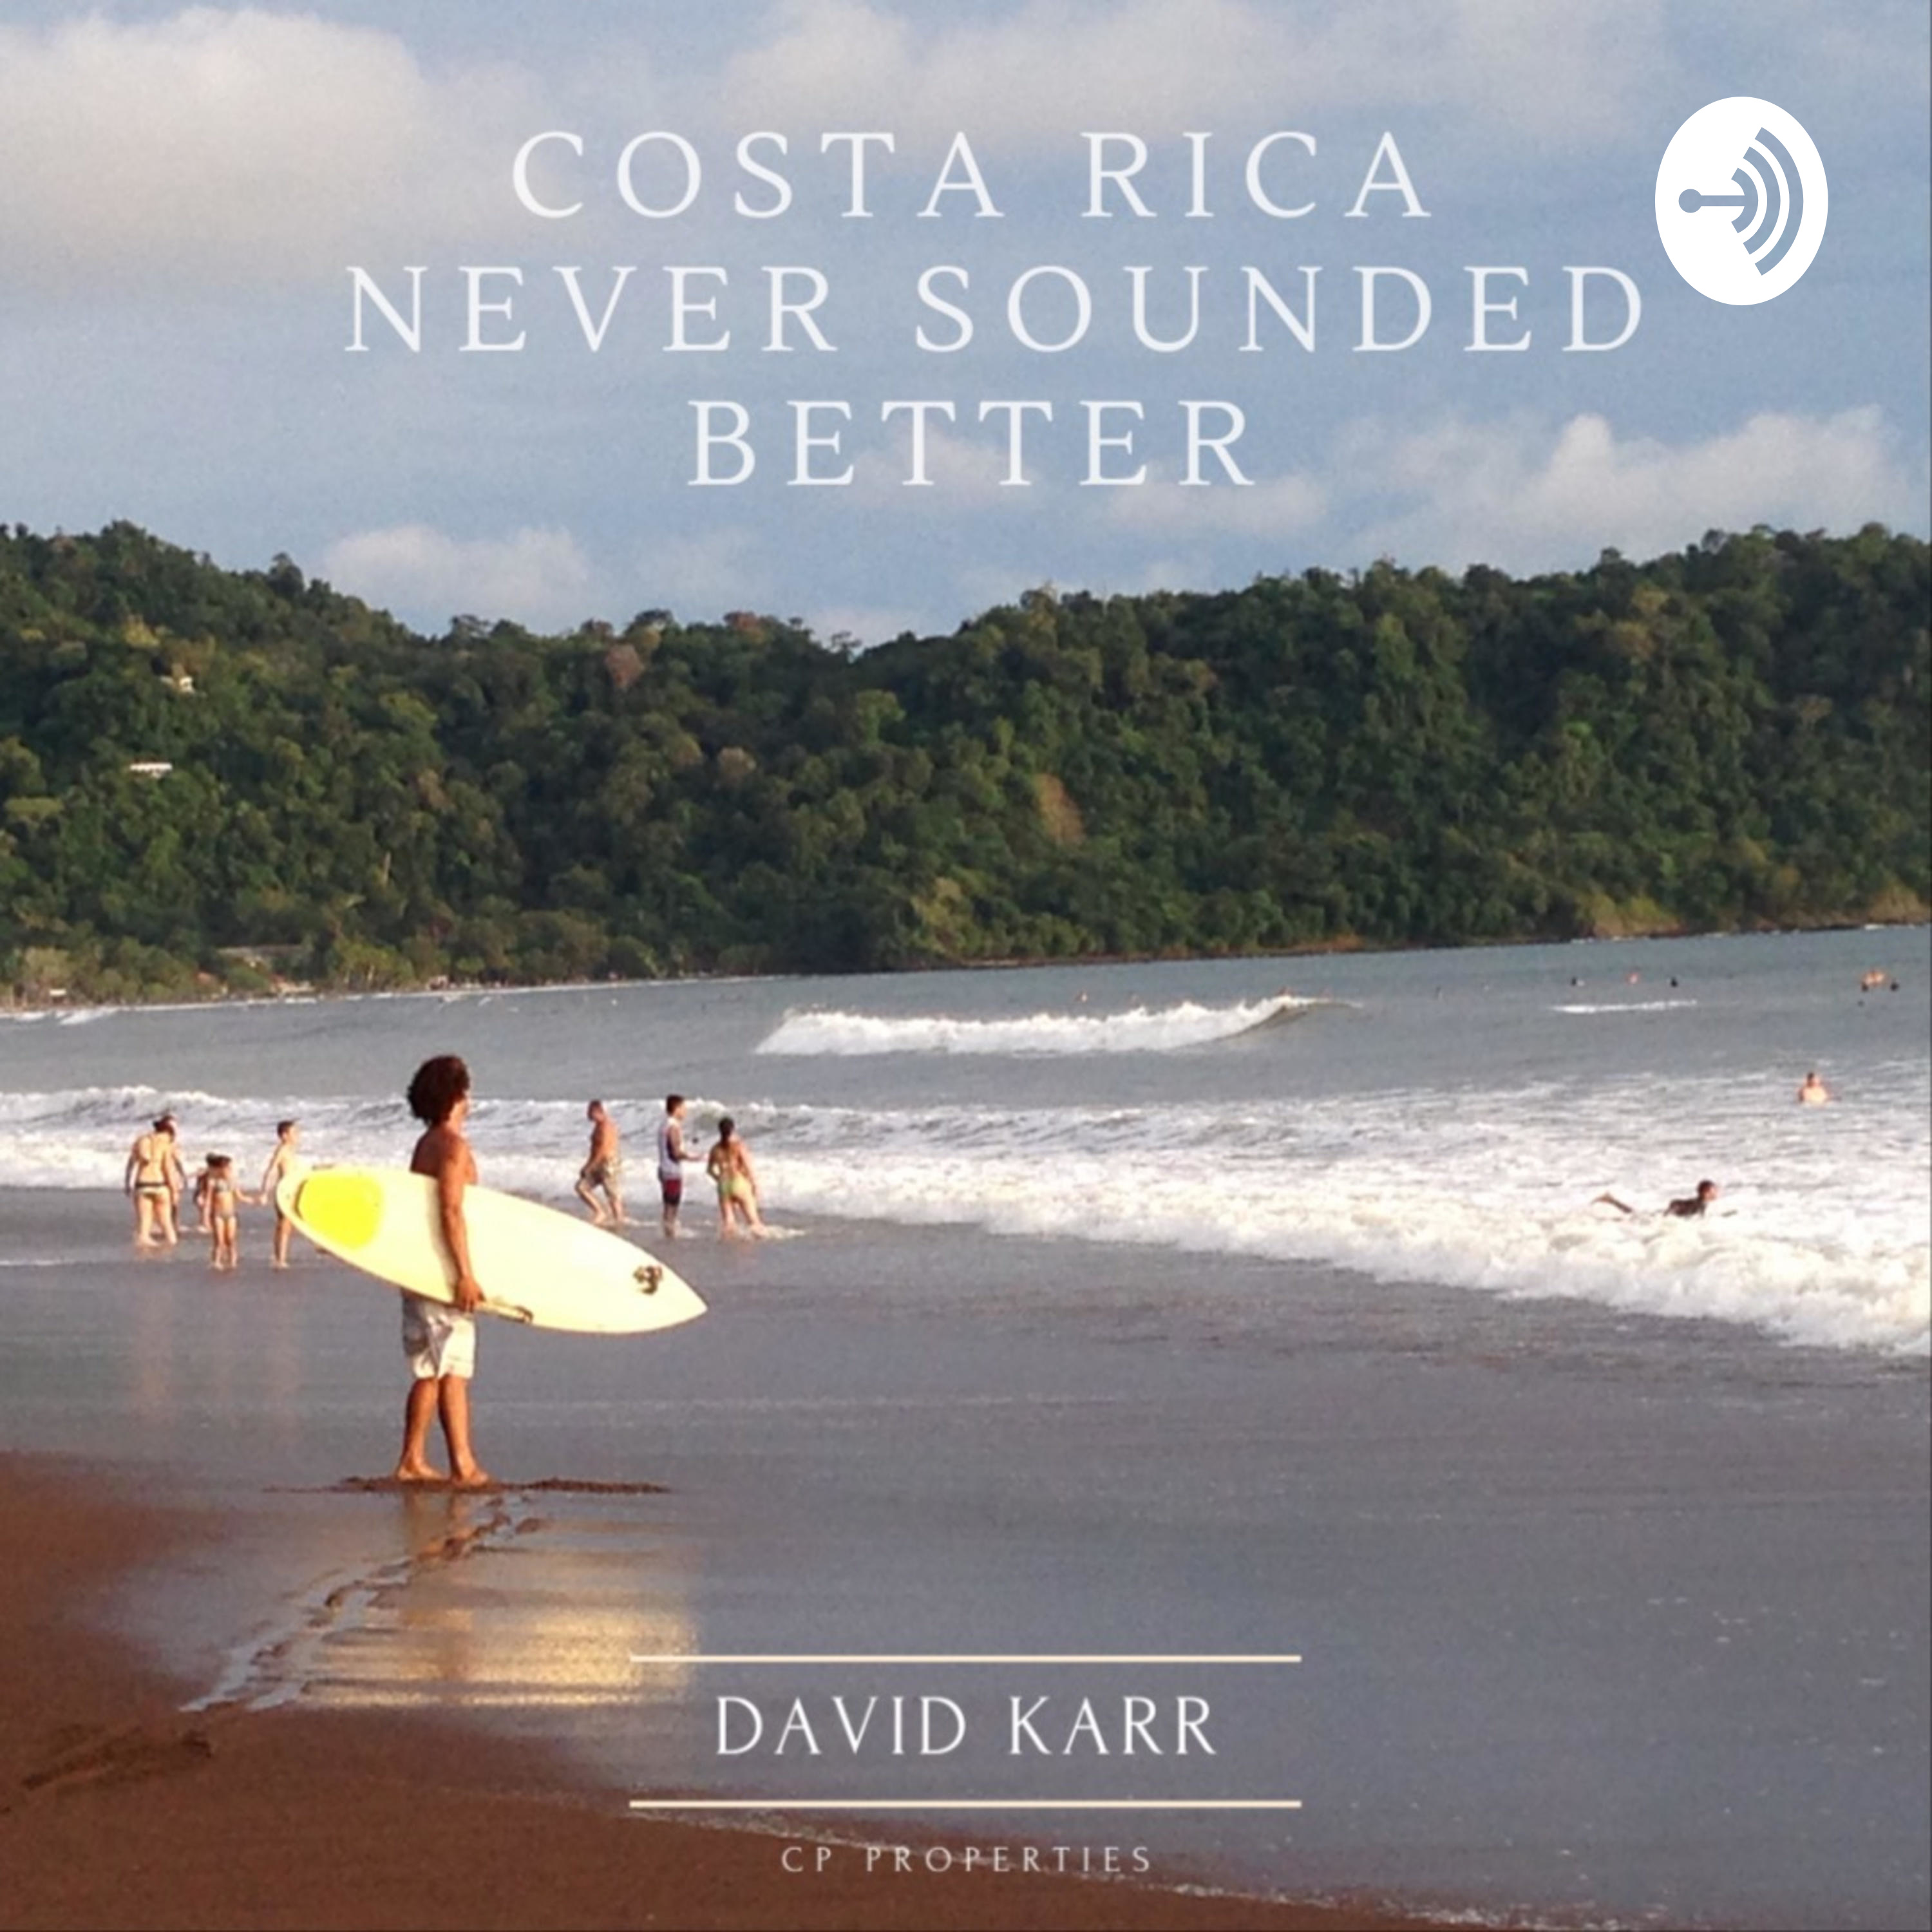 Market Conditions and Other Popular Costa Rica Real Estate Topics